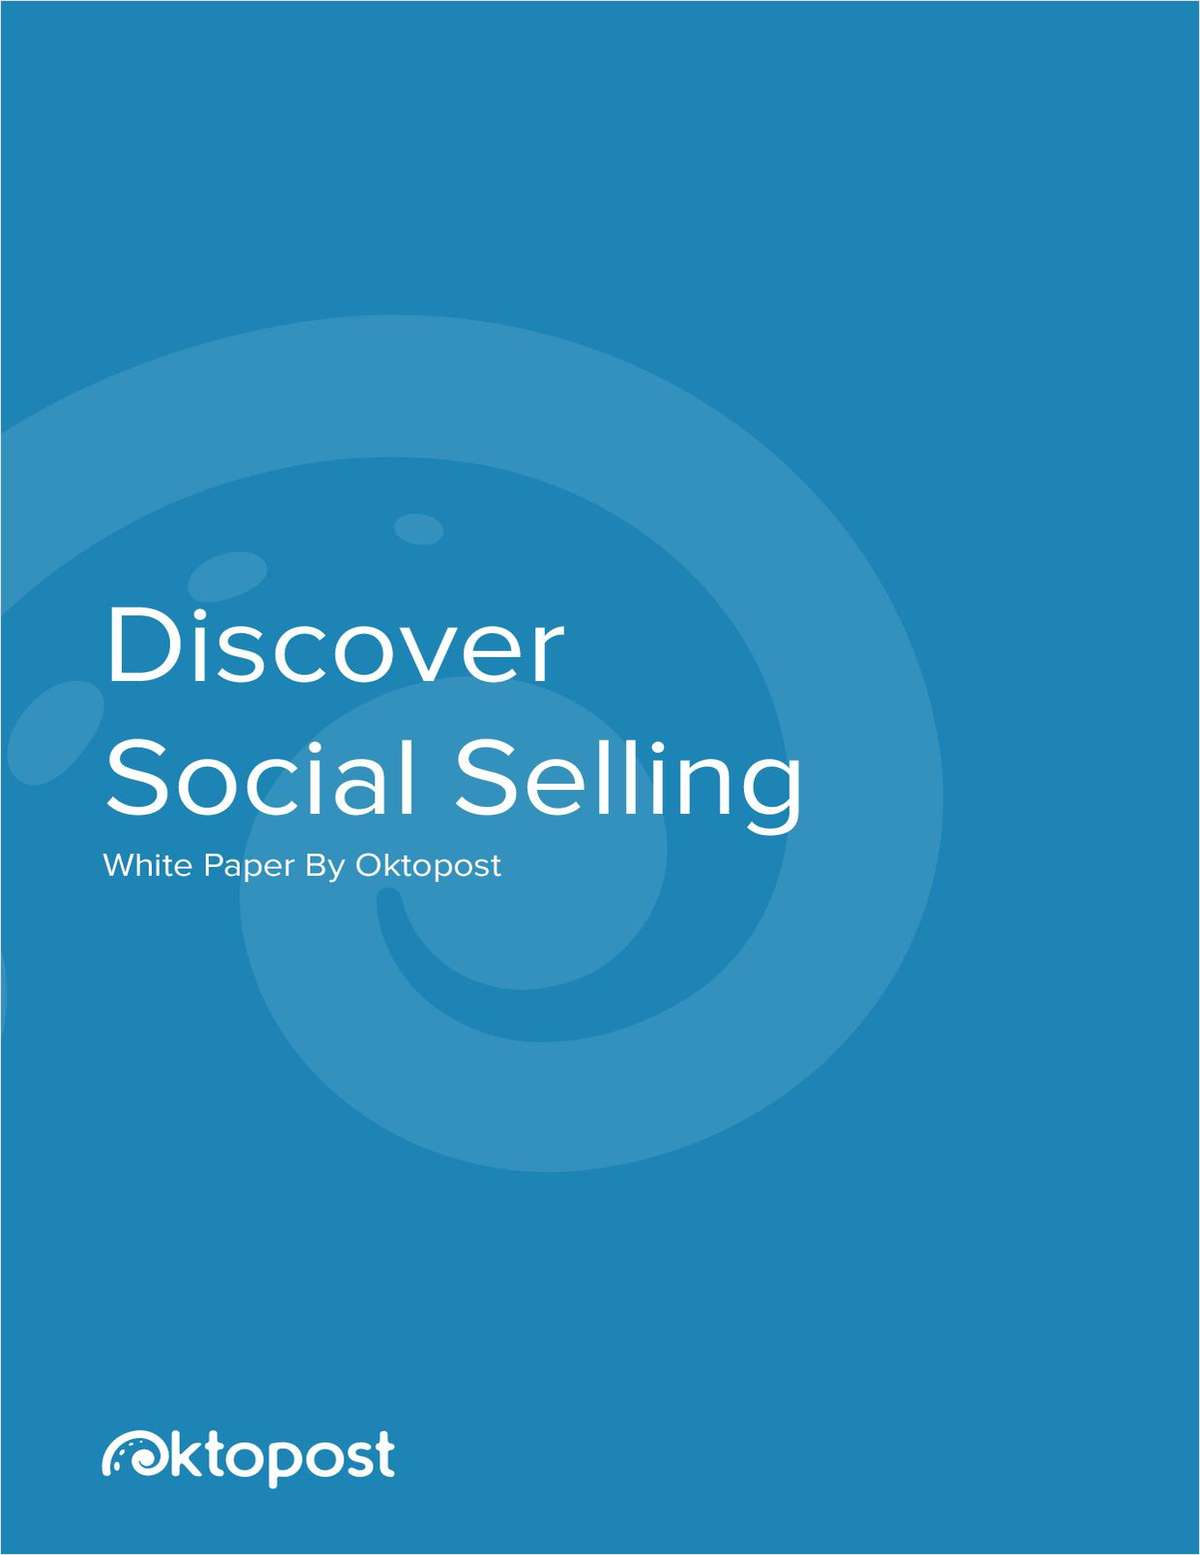 Discover Social Selling